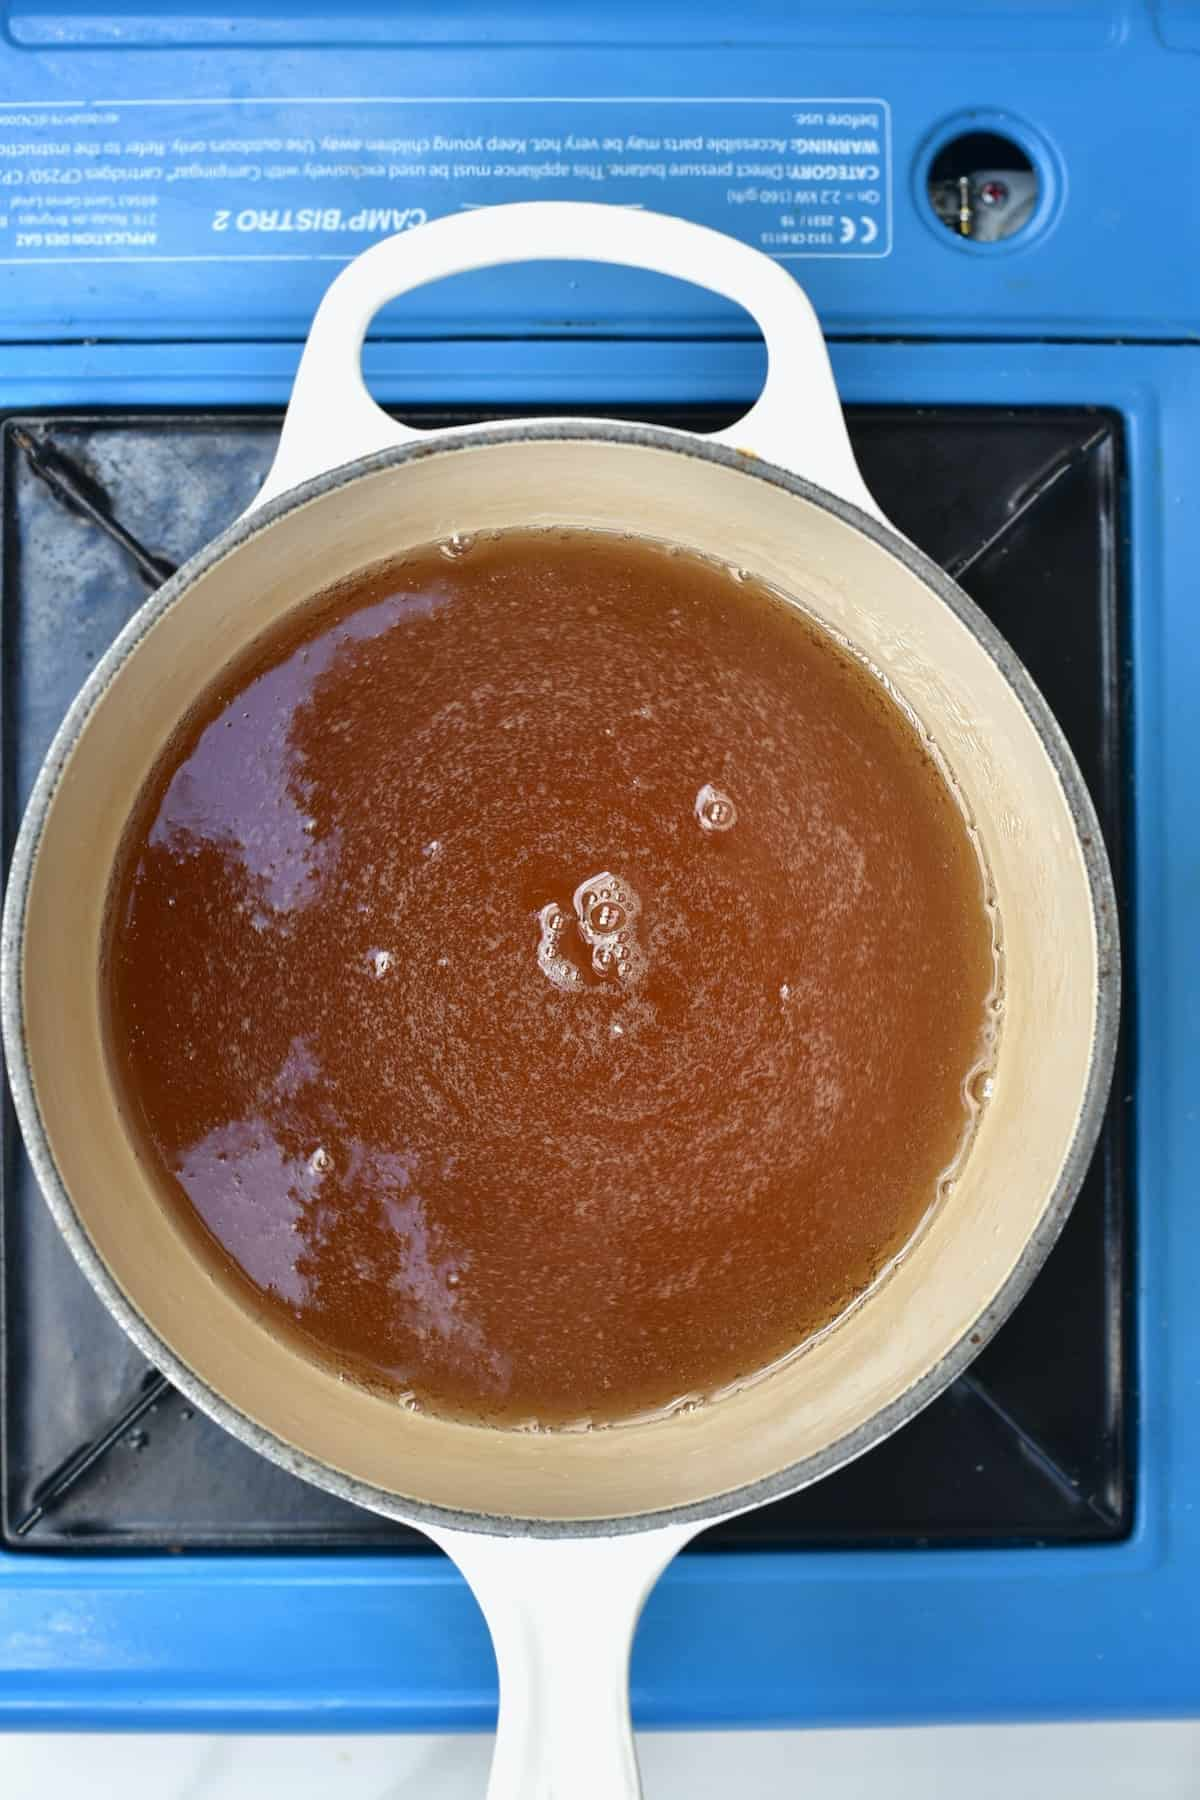 Making sugar syrup in a pan